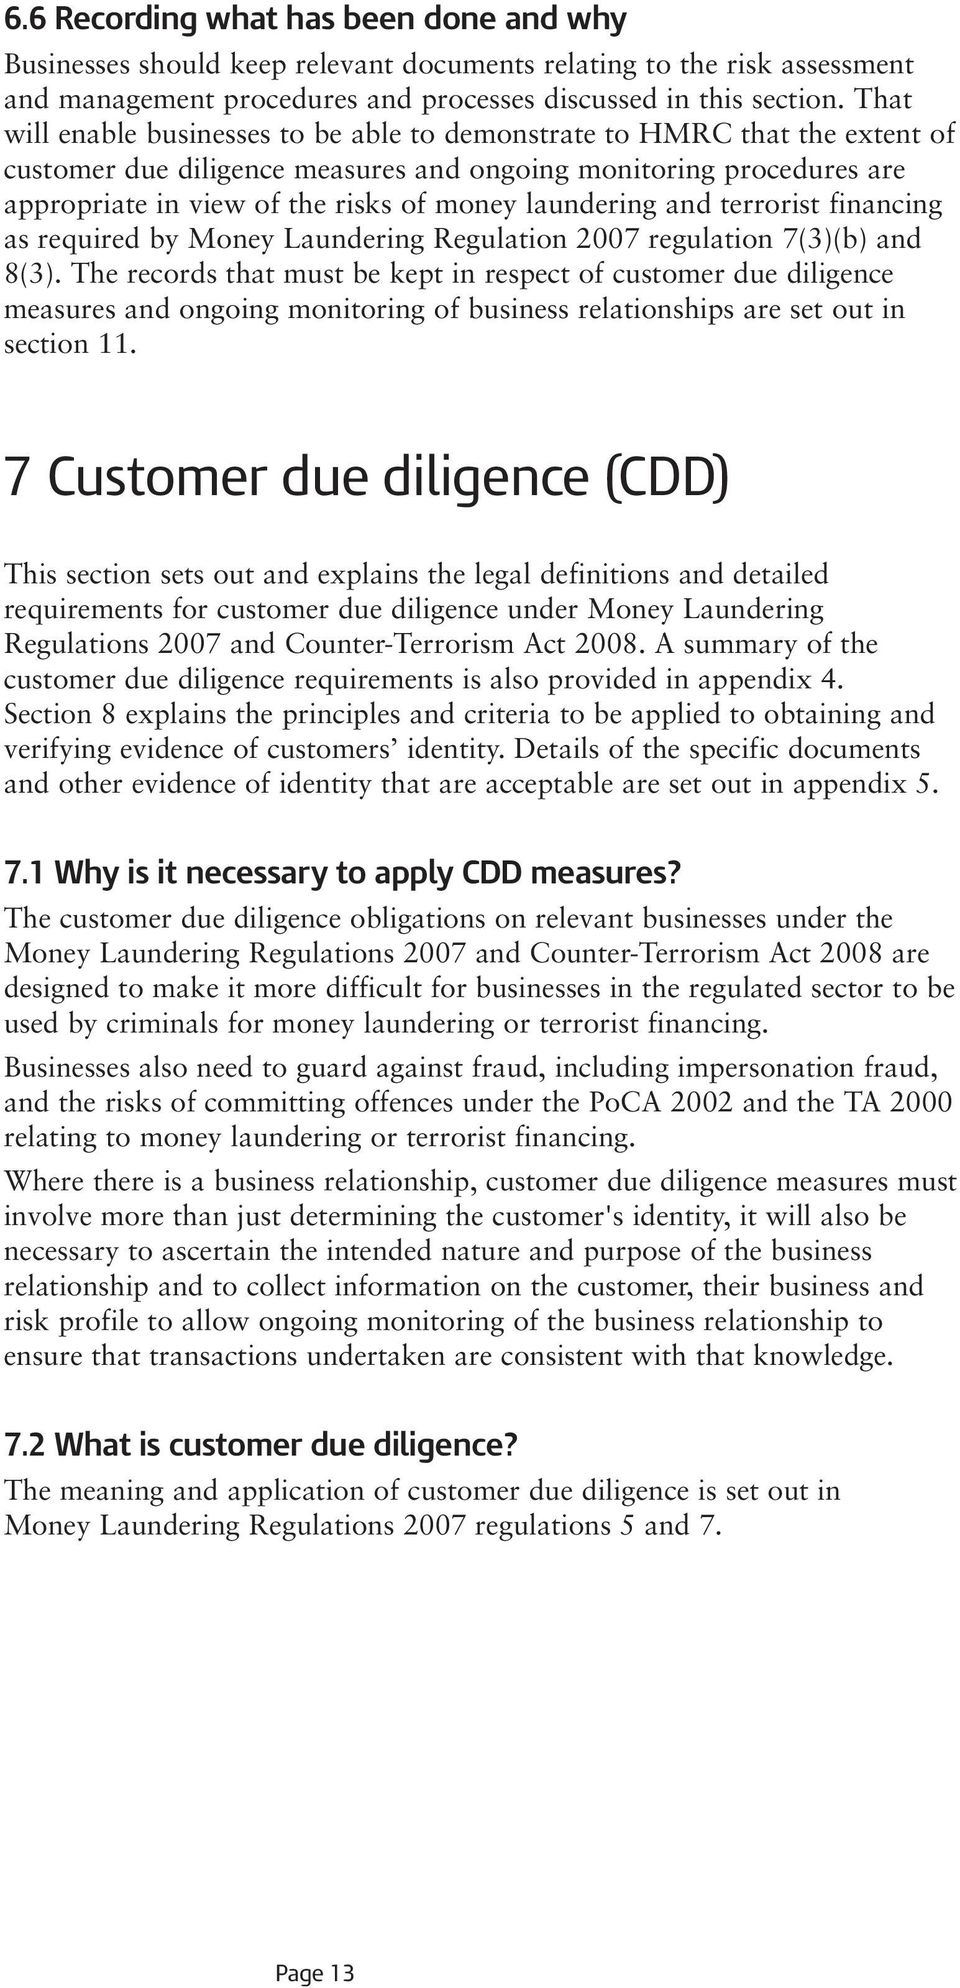 laundering and terrorist financing as required by Money Laundering Regulation 2007 regulation 7(3)(b) and 8(3).